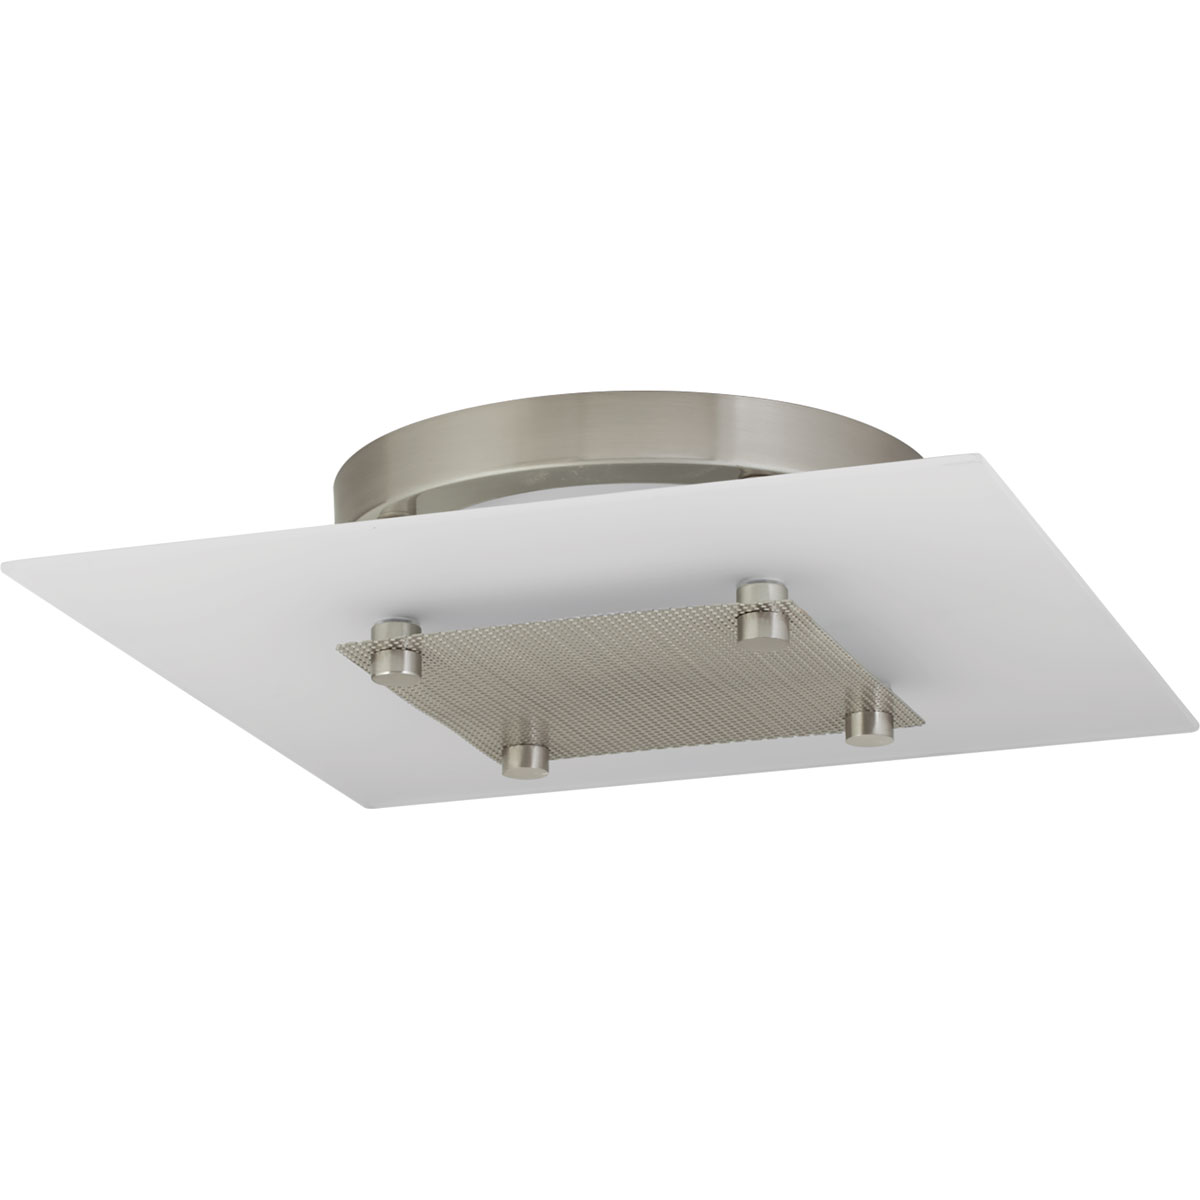 Wall Mounted Ceiling Lights : Progress Lighting (P2311-0930K9) Beyond 12 Inch Square LED Ceiling/Wall Mount